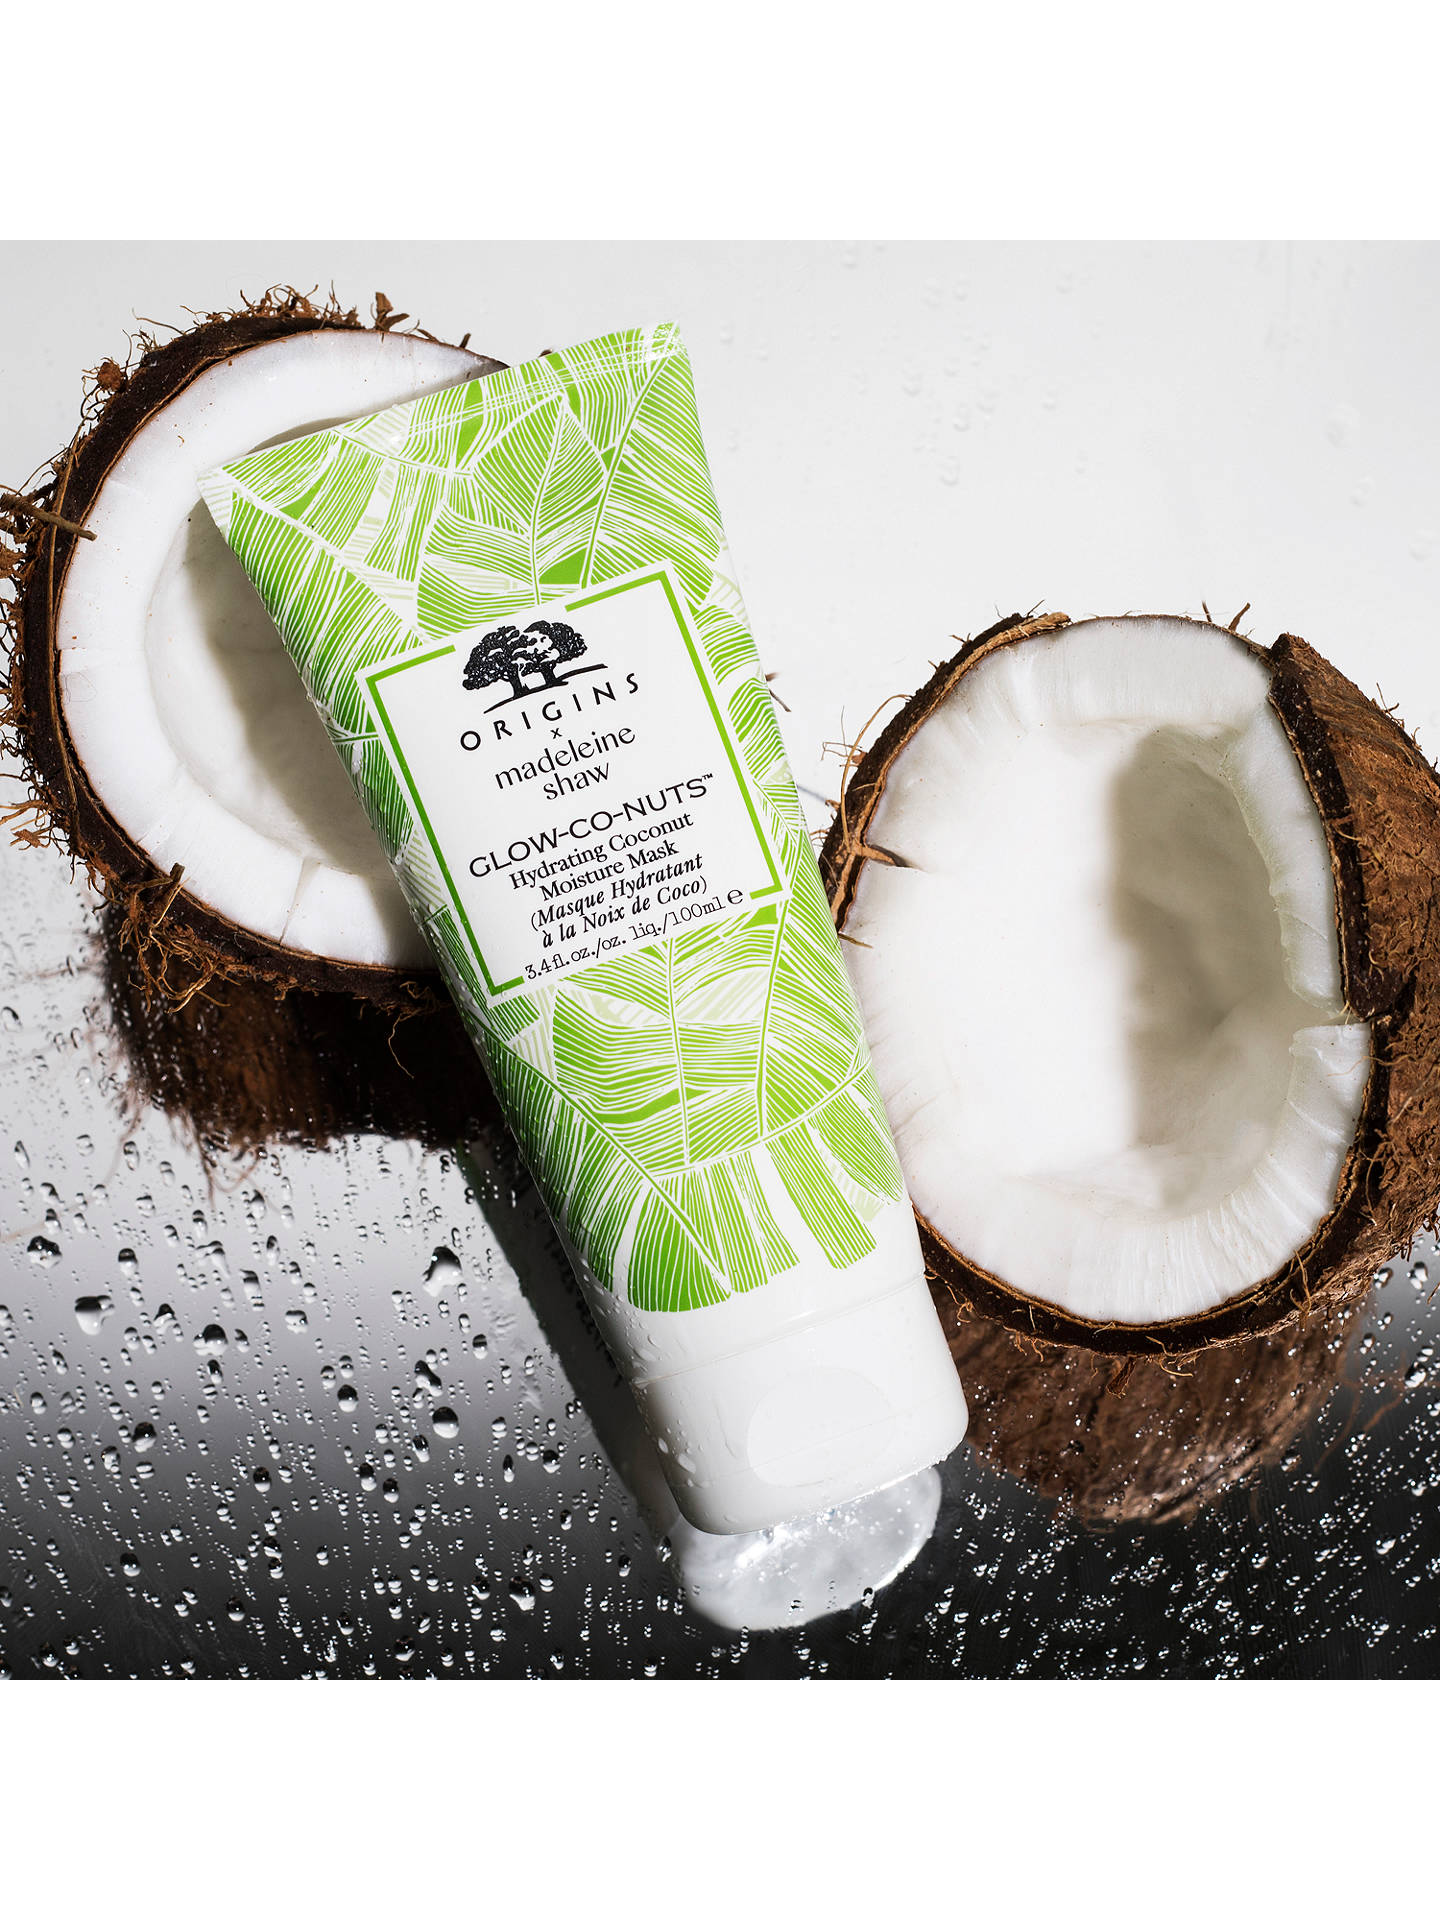 Buy Origins x Madeleine Shaw Glow-Co-Nuts Hydrating Coconut Moisture Mask, 100ml Online at johnlewis.com